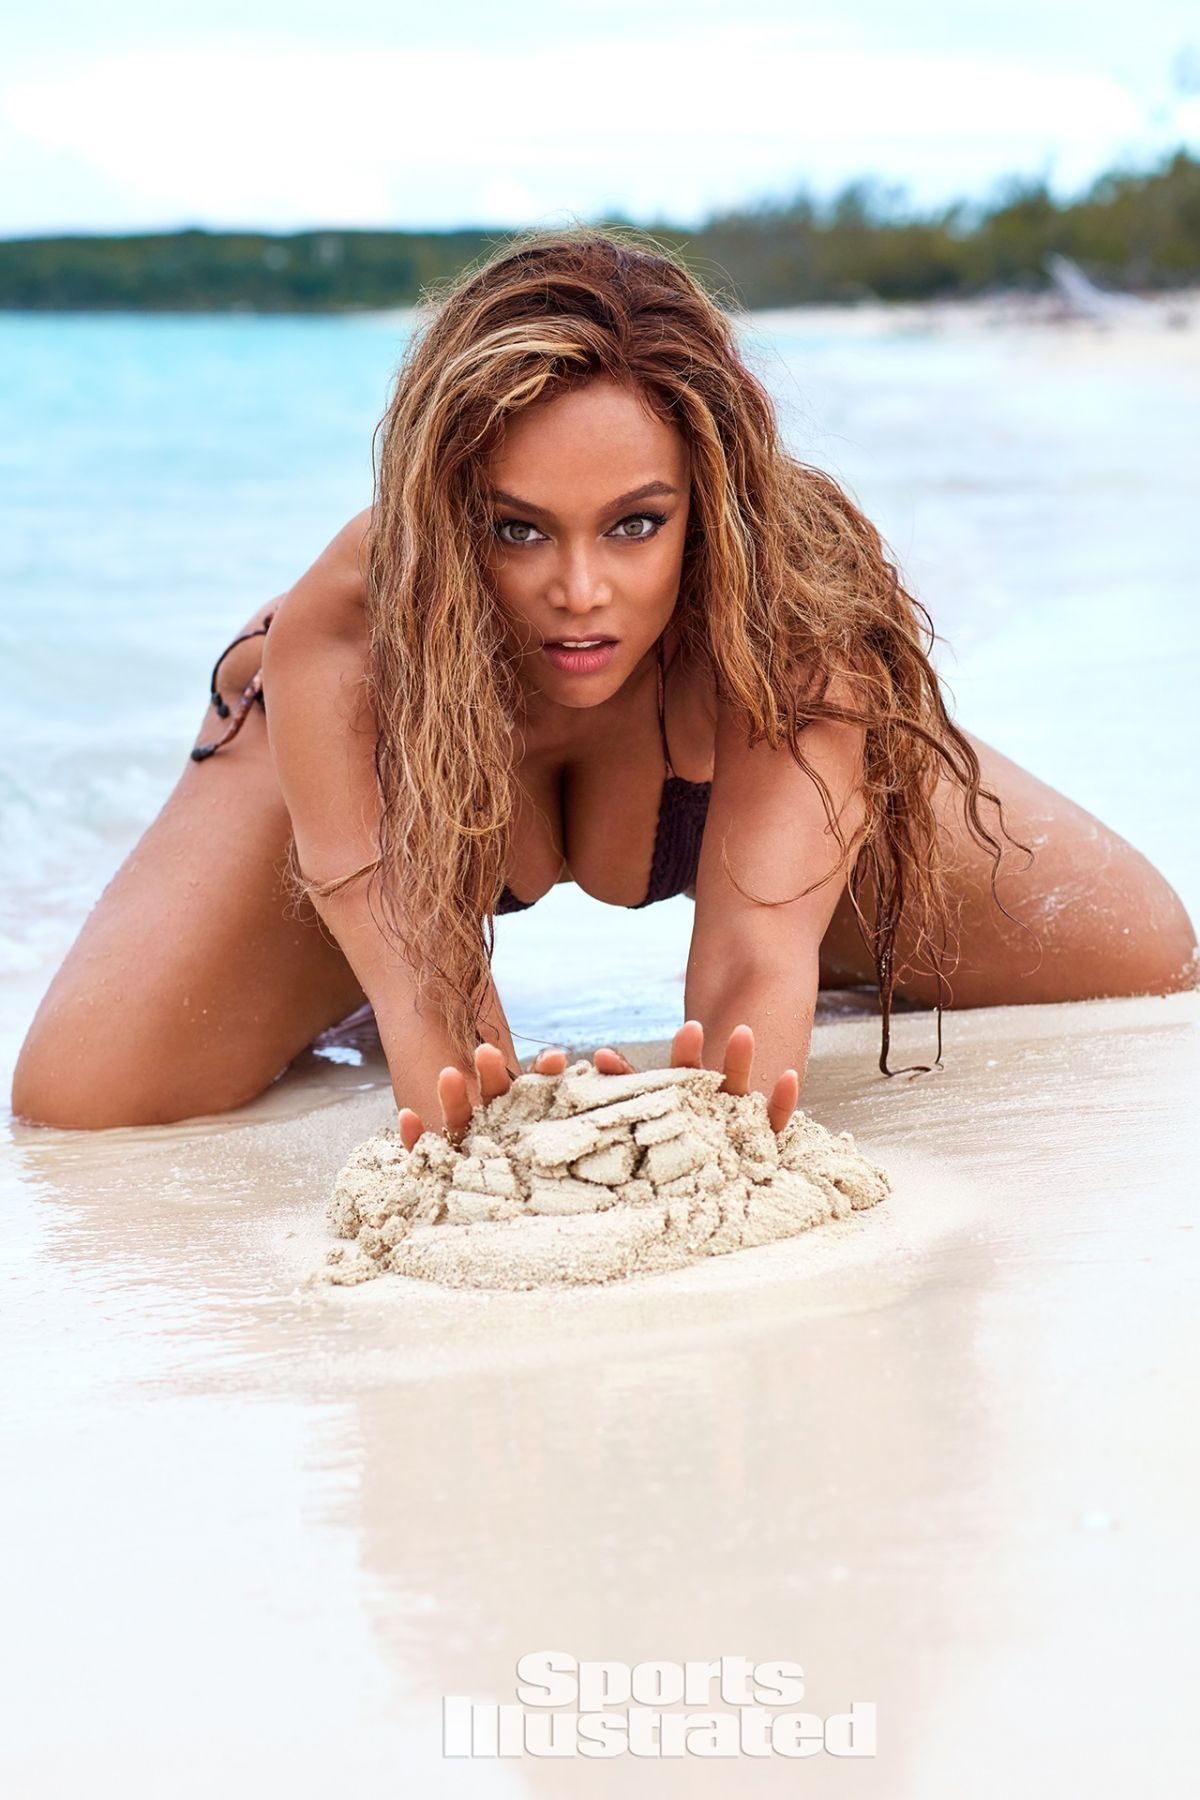 http://www.celebzz.com/wp-content/uploads/2019/05/tyra-banks-sports-illustrated-swimsuit-2019-13.jpg